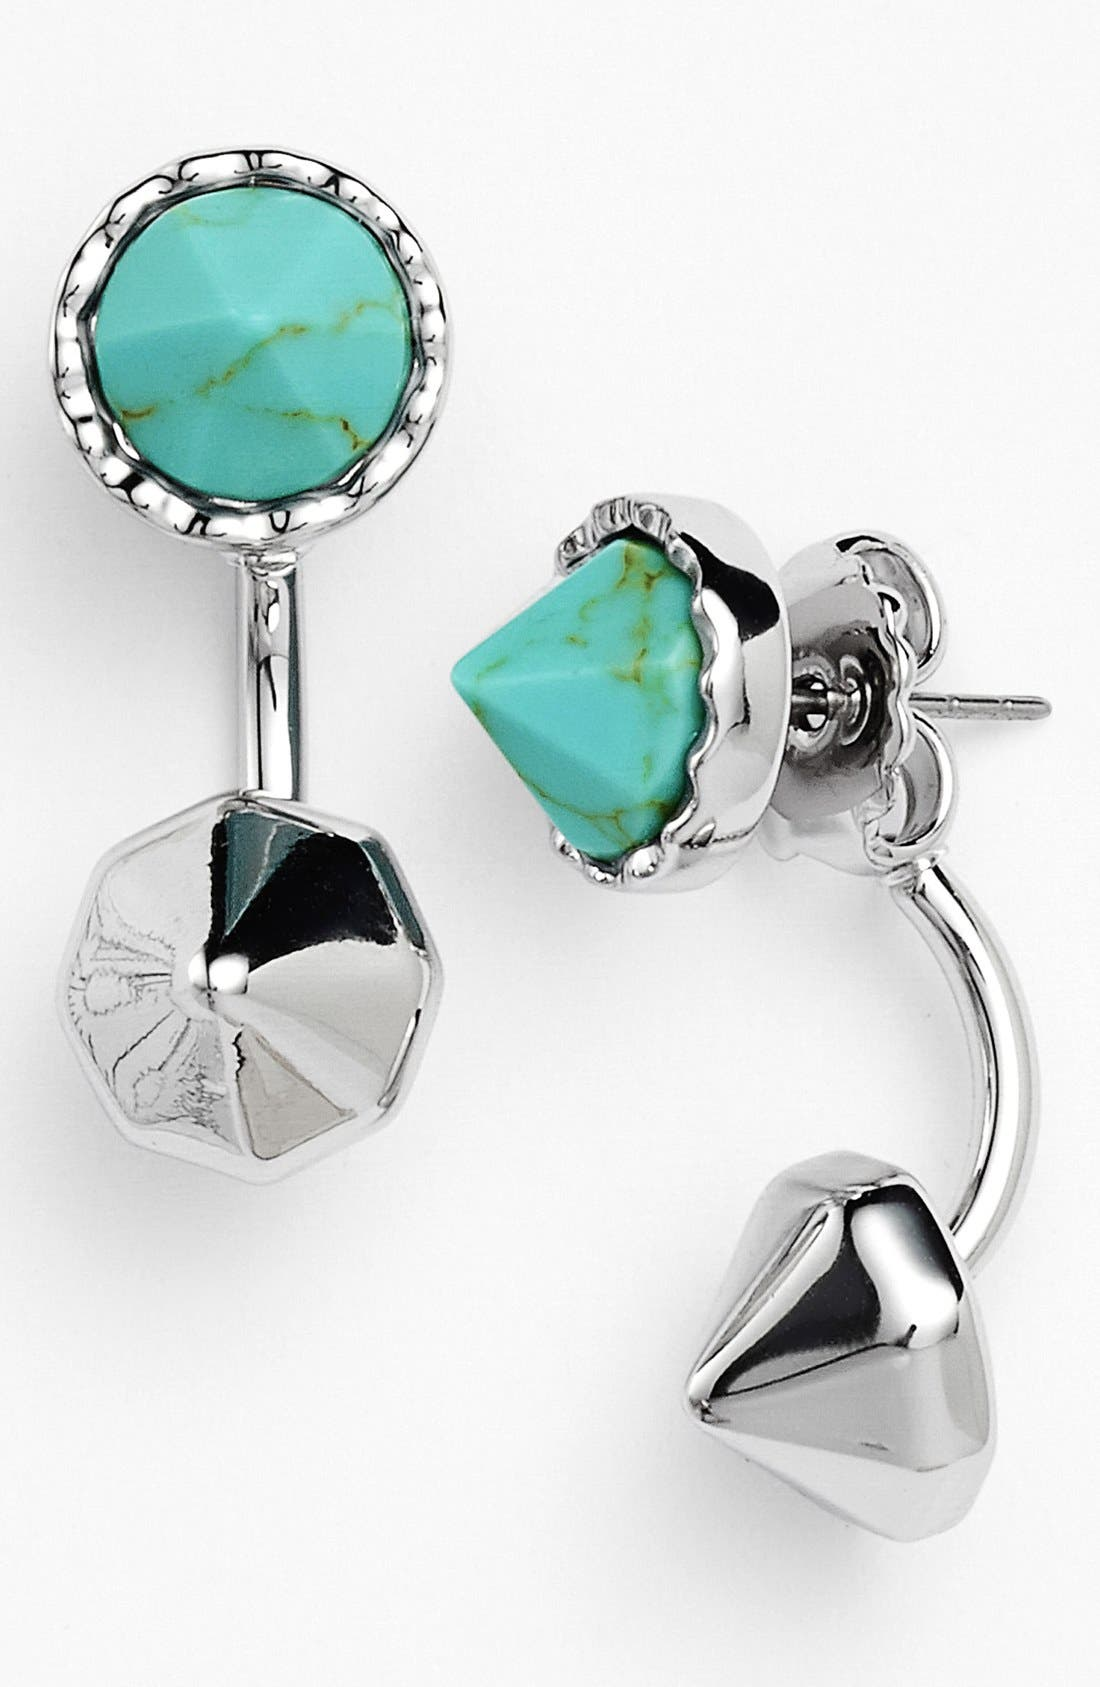 'Tulum' Drop Earrings,                             Main thumbnail 1, color,                             Turquoise/ Silver